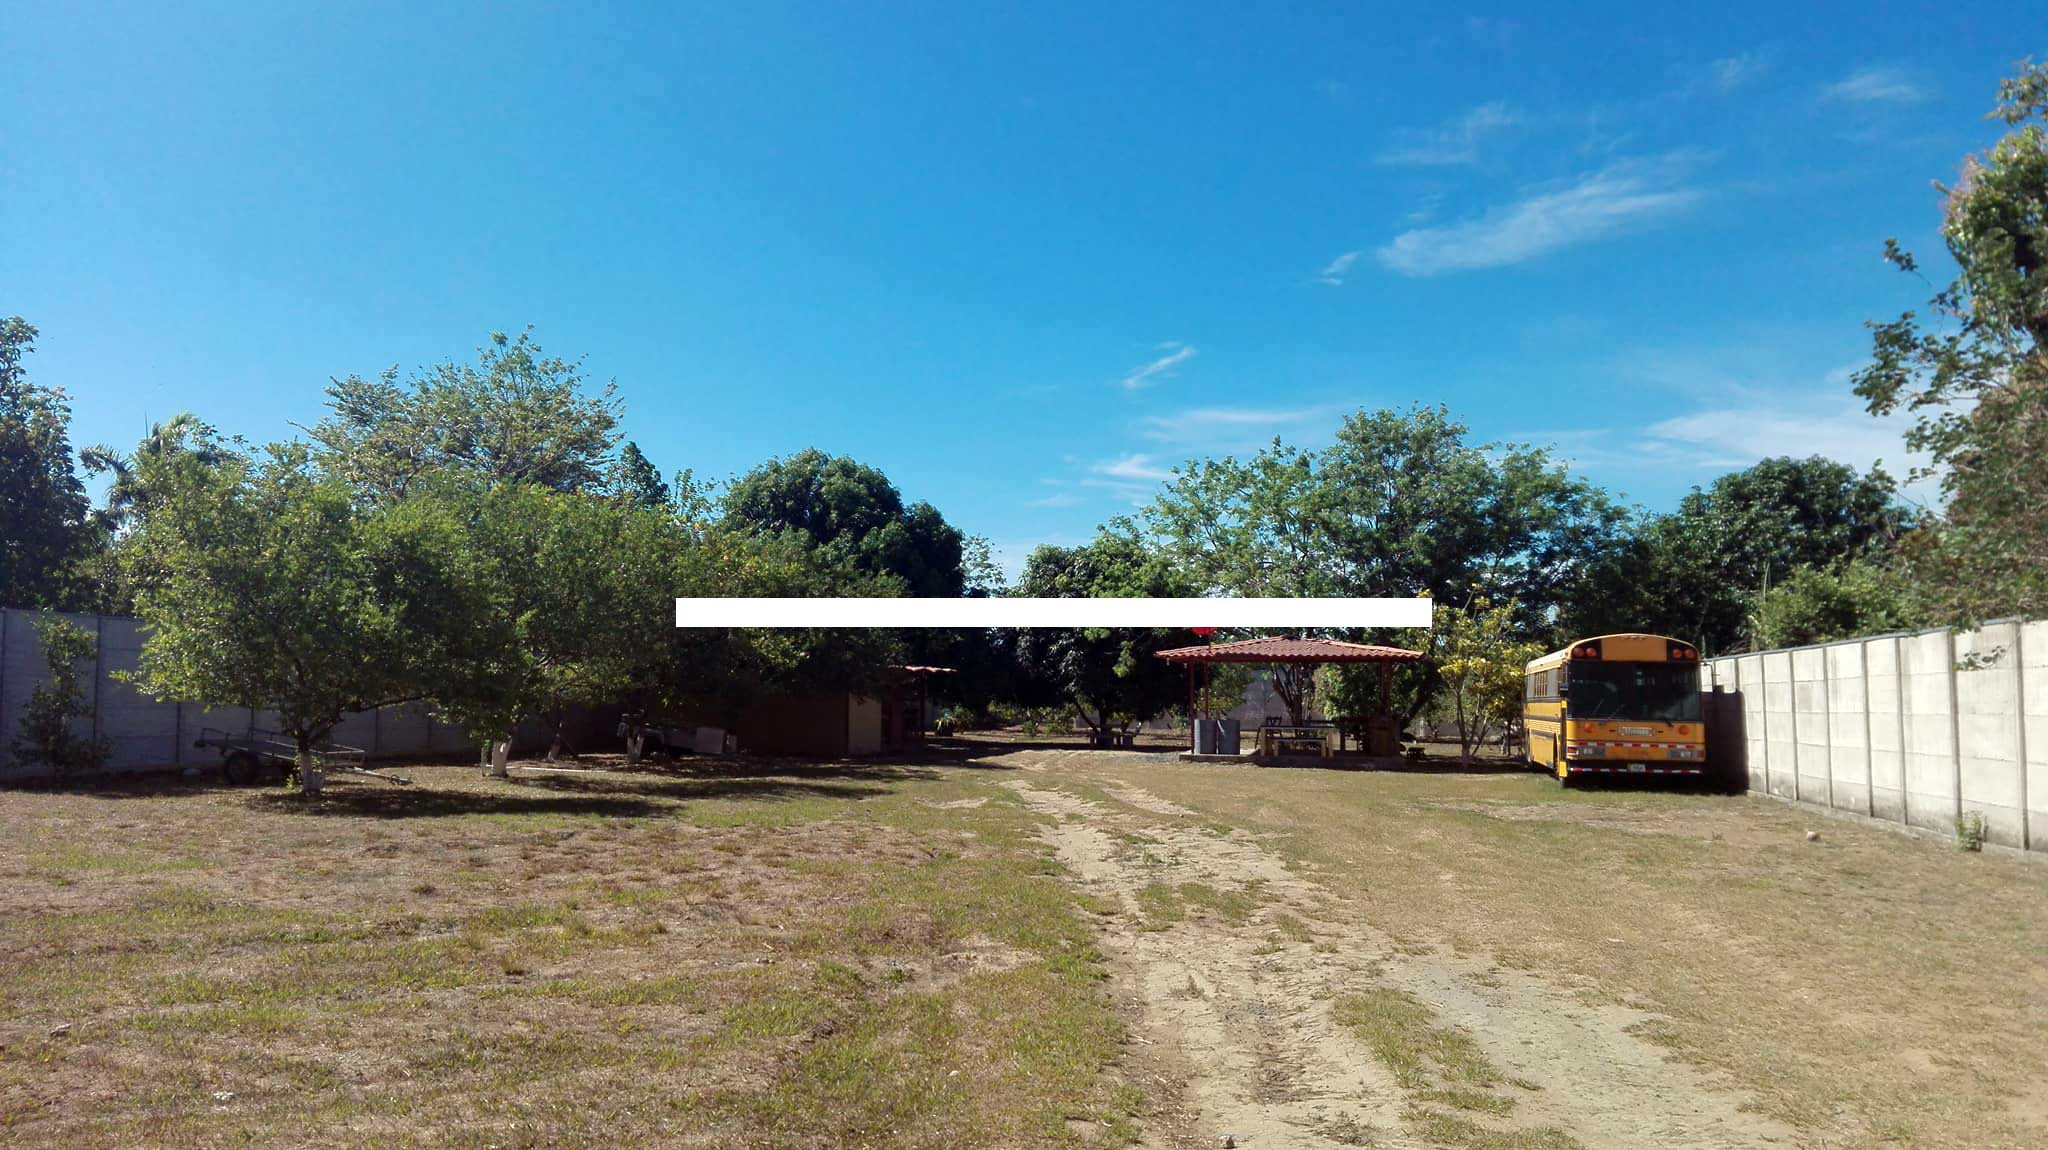 Current design of MP house in Liberia Guanacaste. House with long roof and ranch on the right